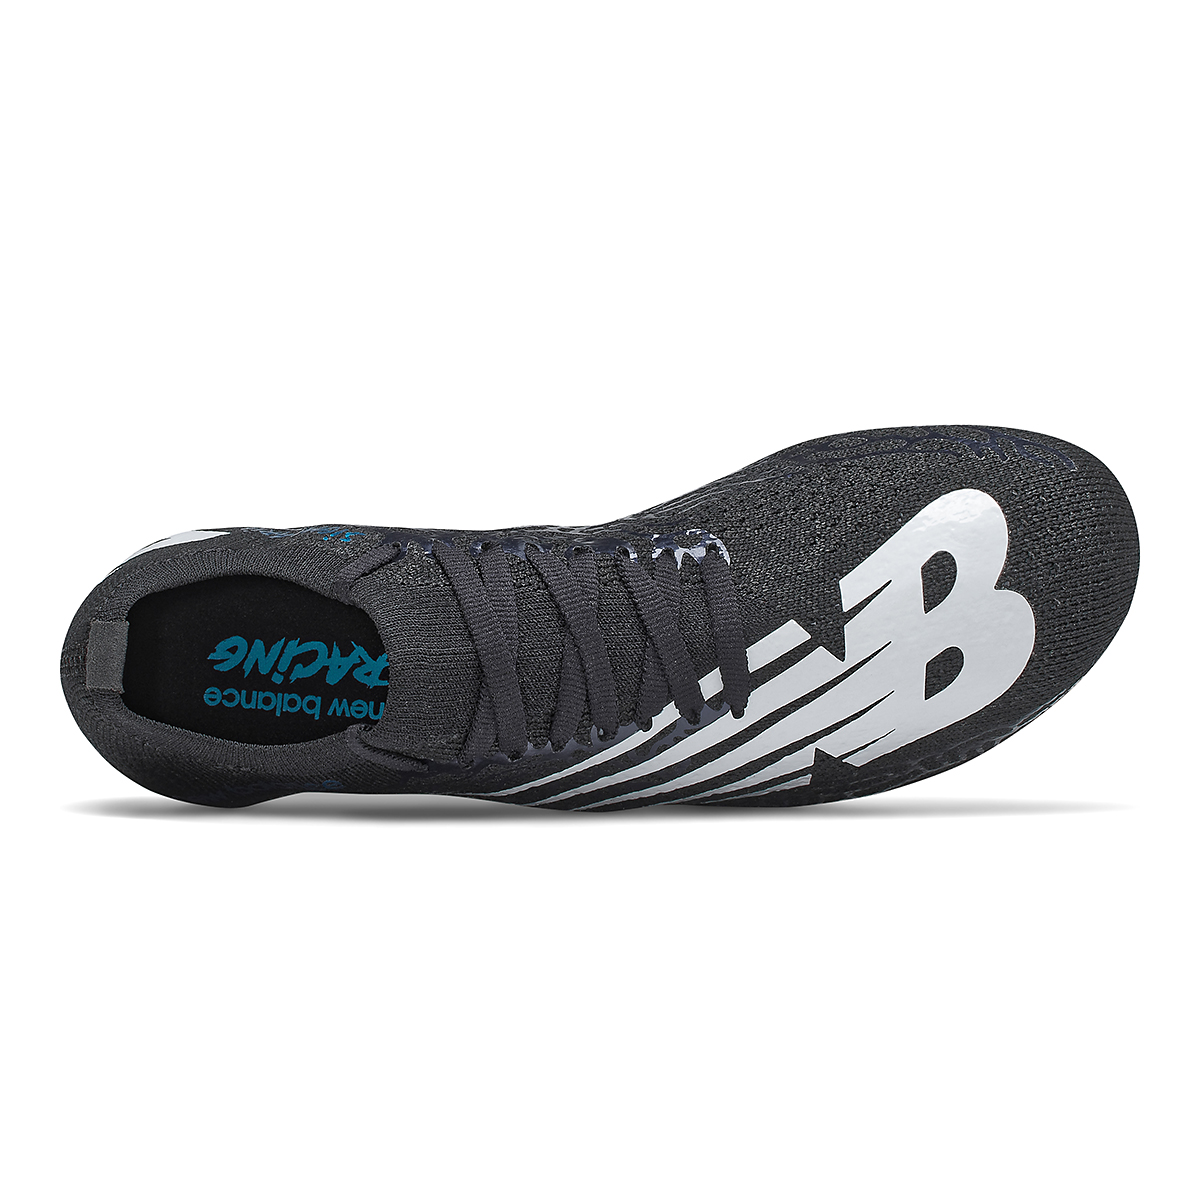 Women's New Balance Sigma Aria Track Spikes - Color: Black/White - Size: 5.5 - Width: Regular, Black/White, large, image 3